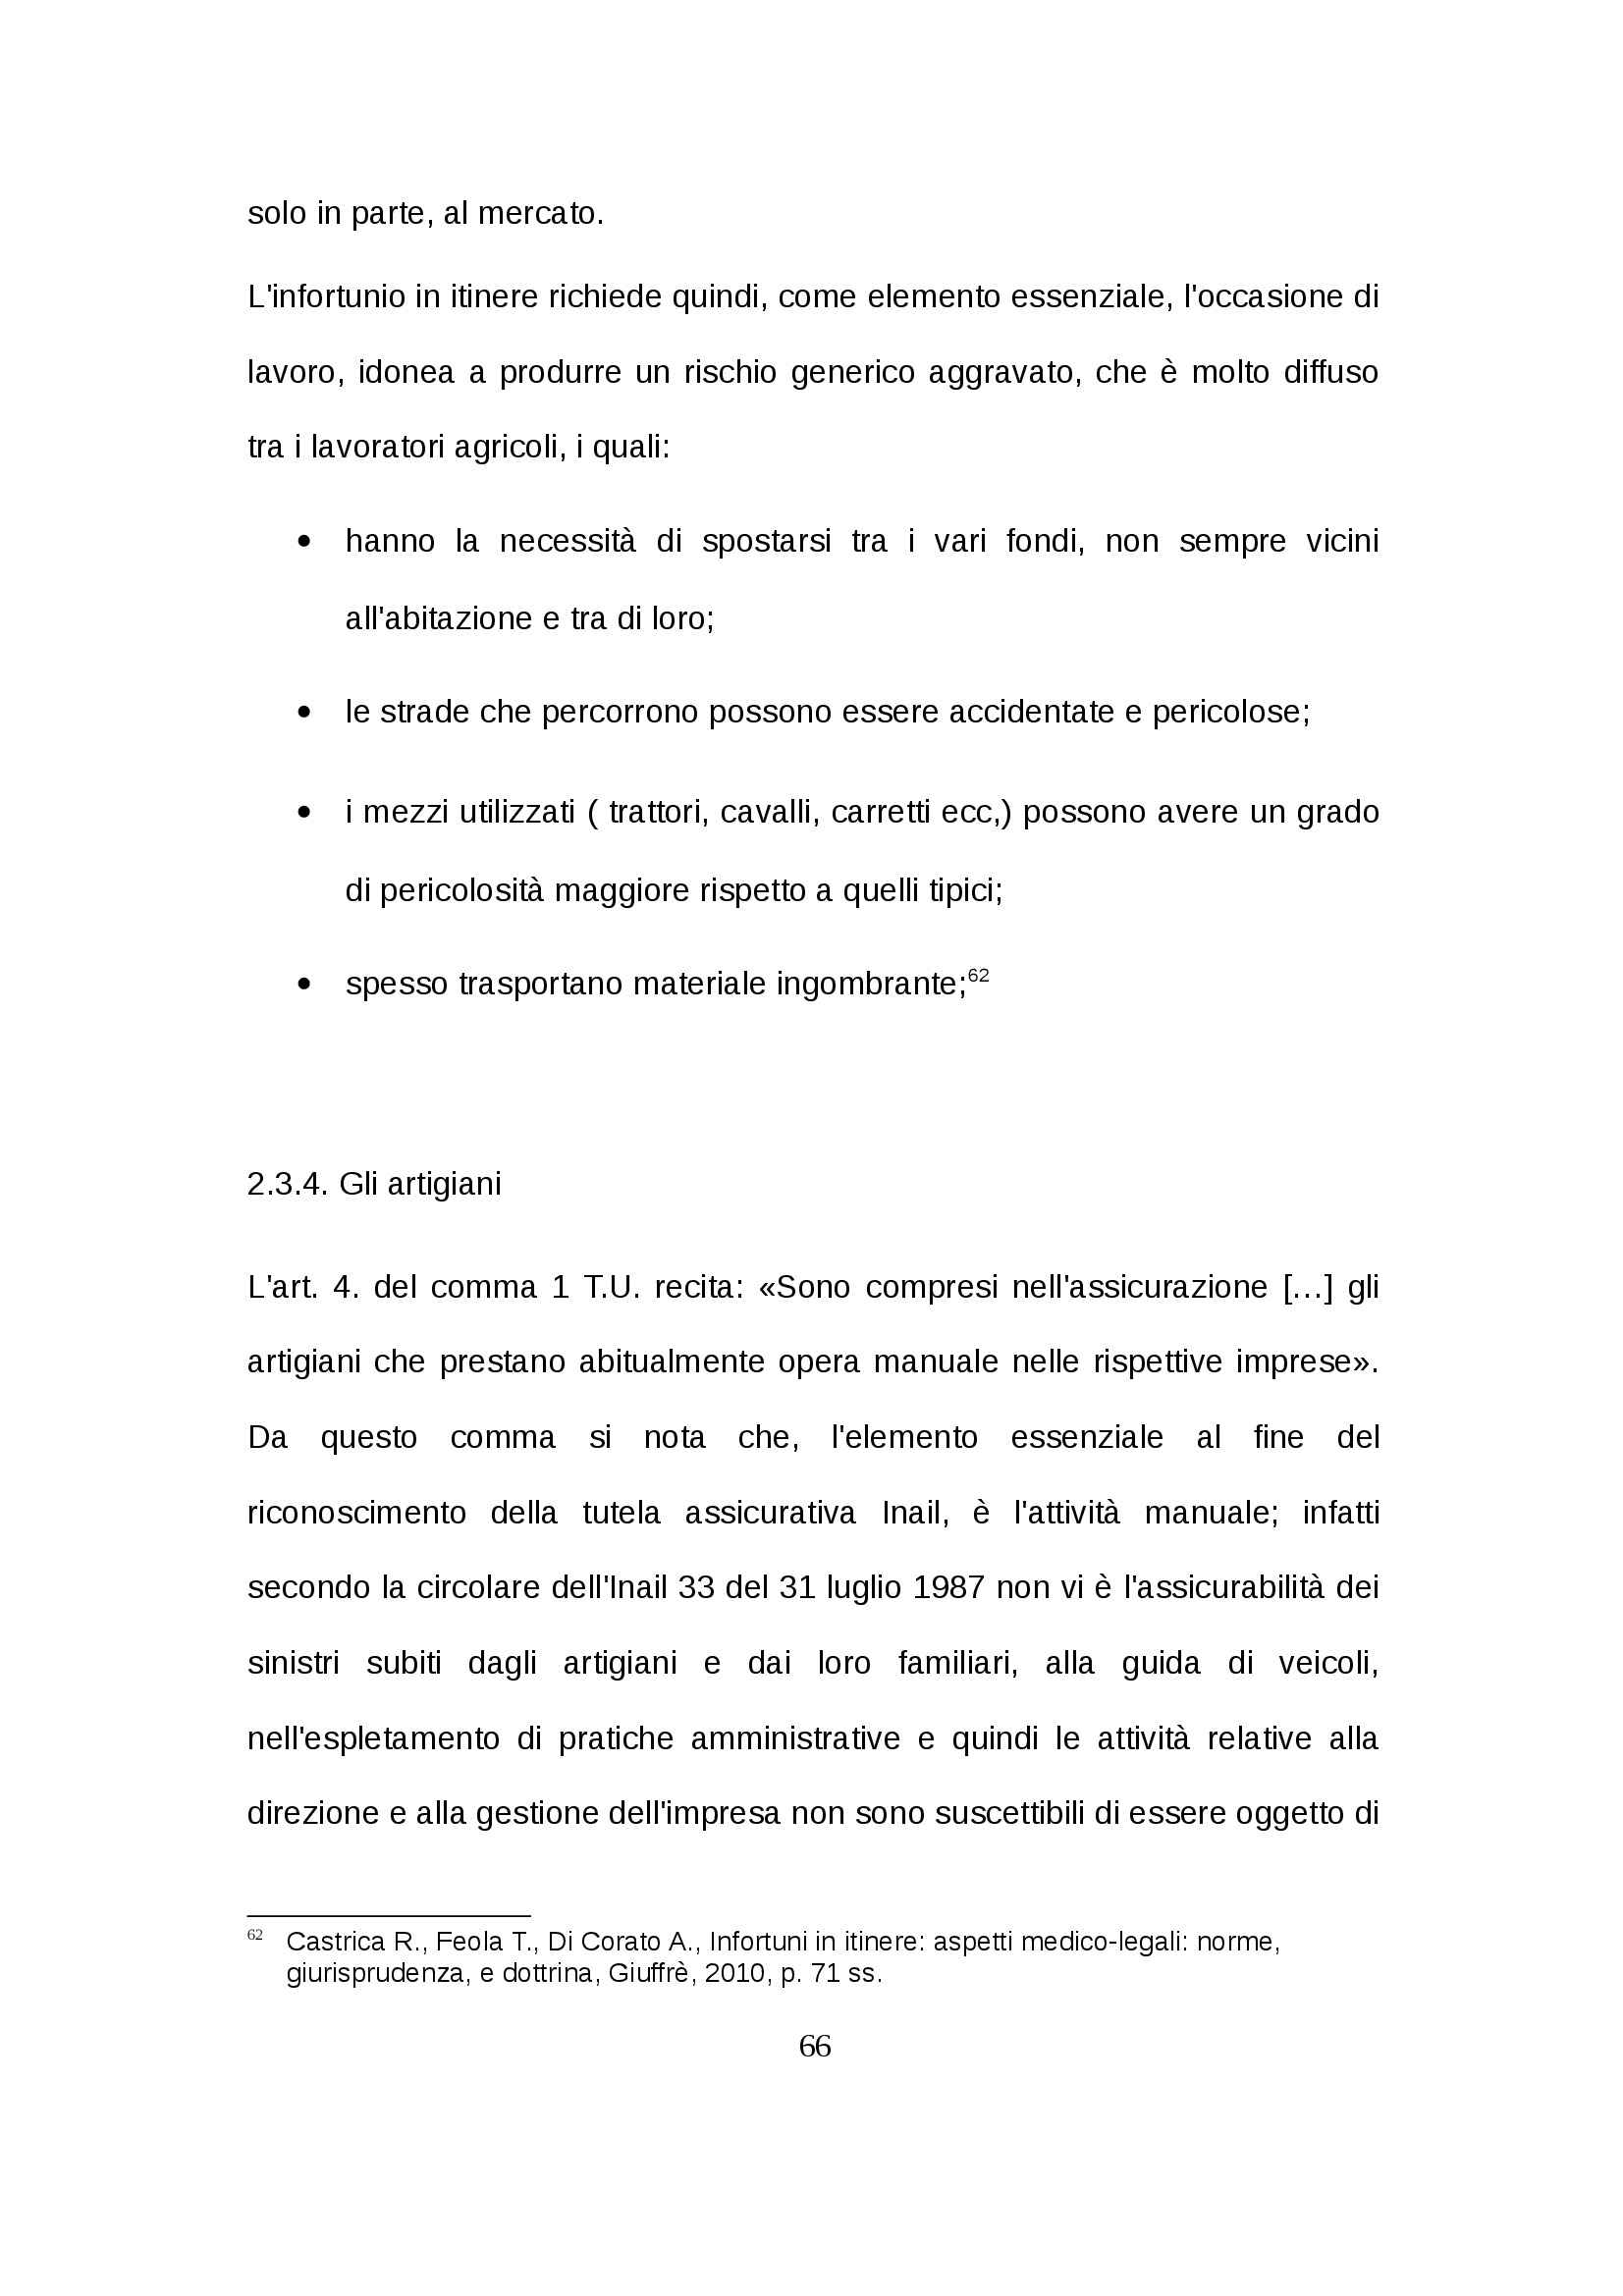 Tesi - Infortunio in itinere Pag. 66